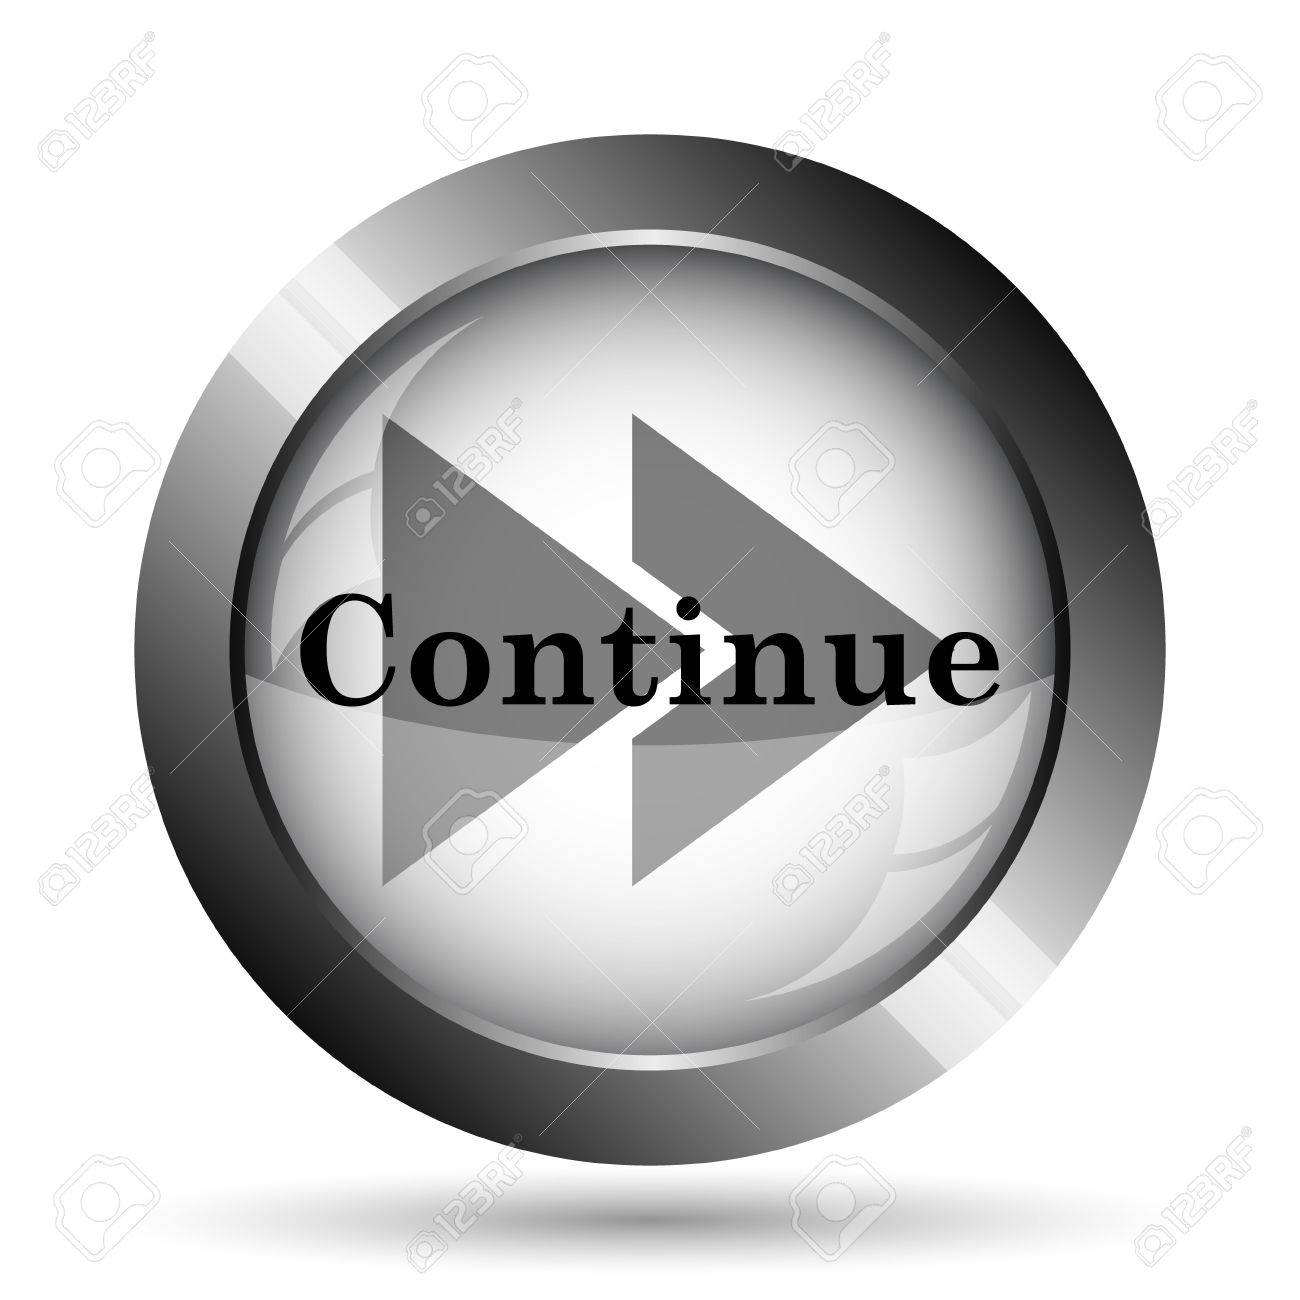 Continue Icon Website Button On White Background Stock Photo